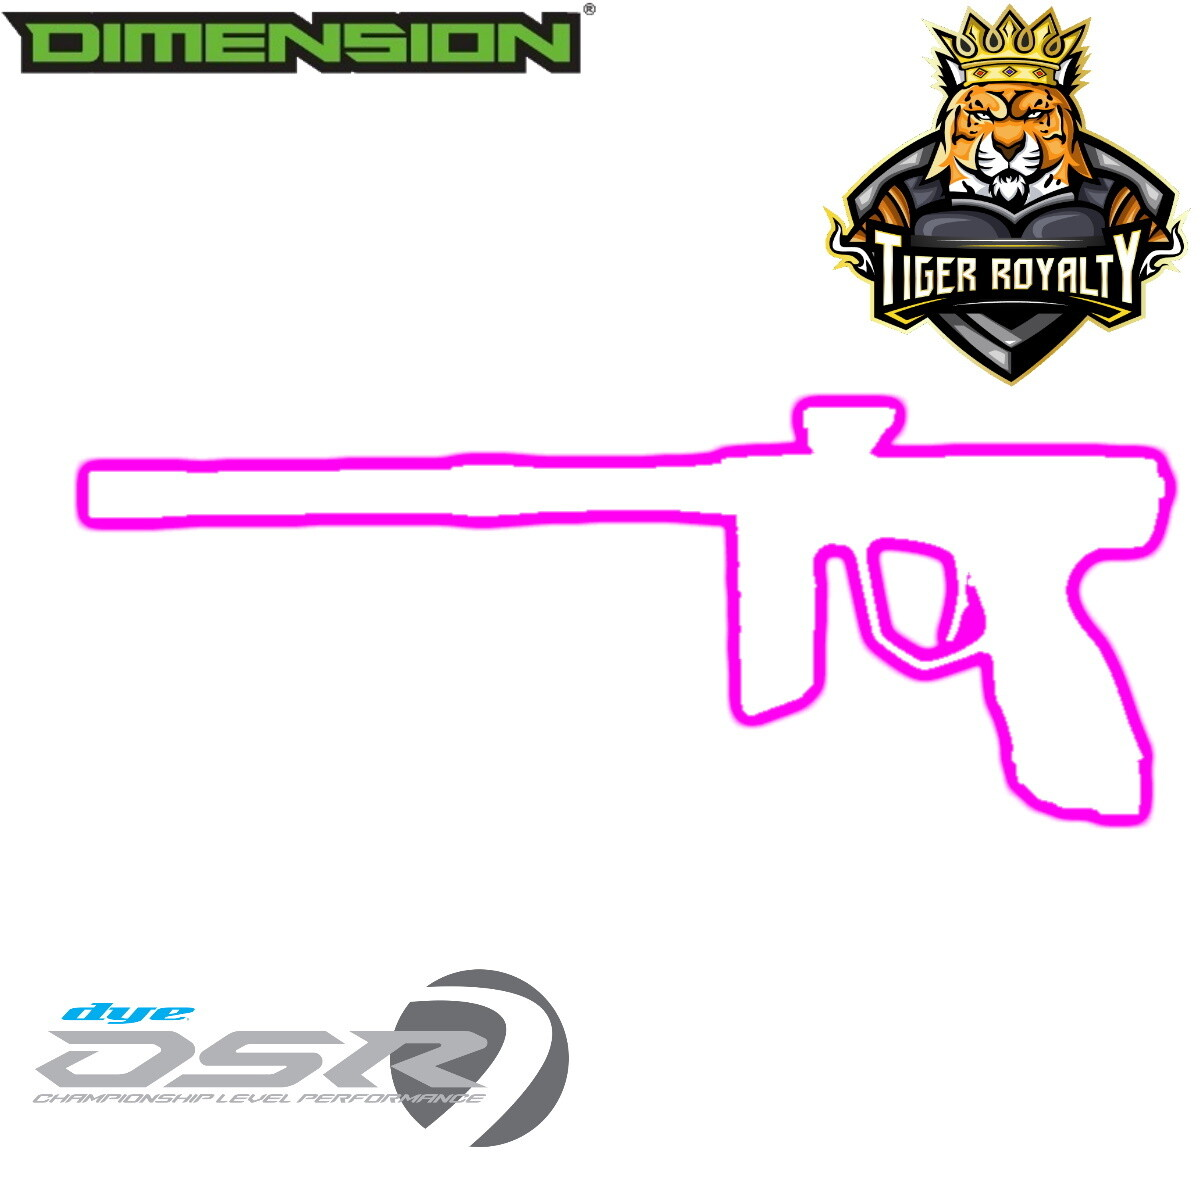 Dye DSR - Dimension Limited Edition 1 of 1 / Tiger Royalty - Electra